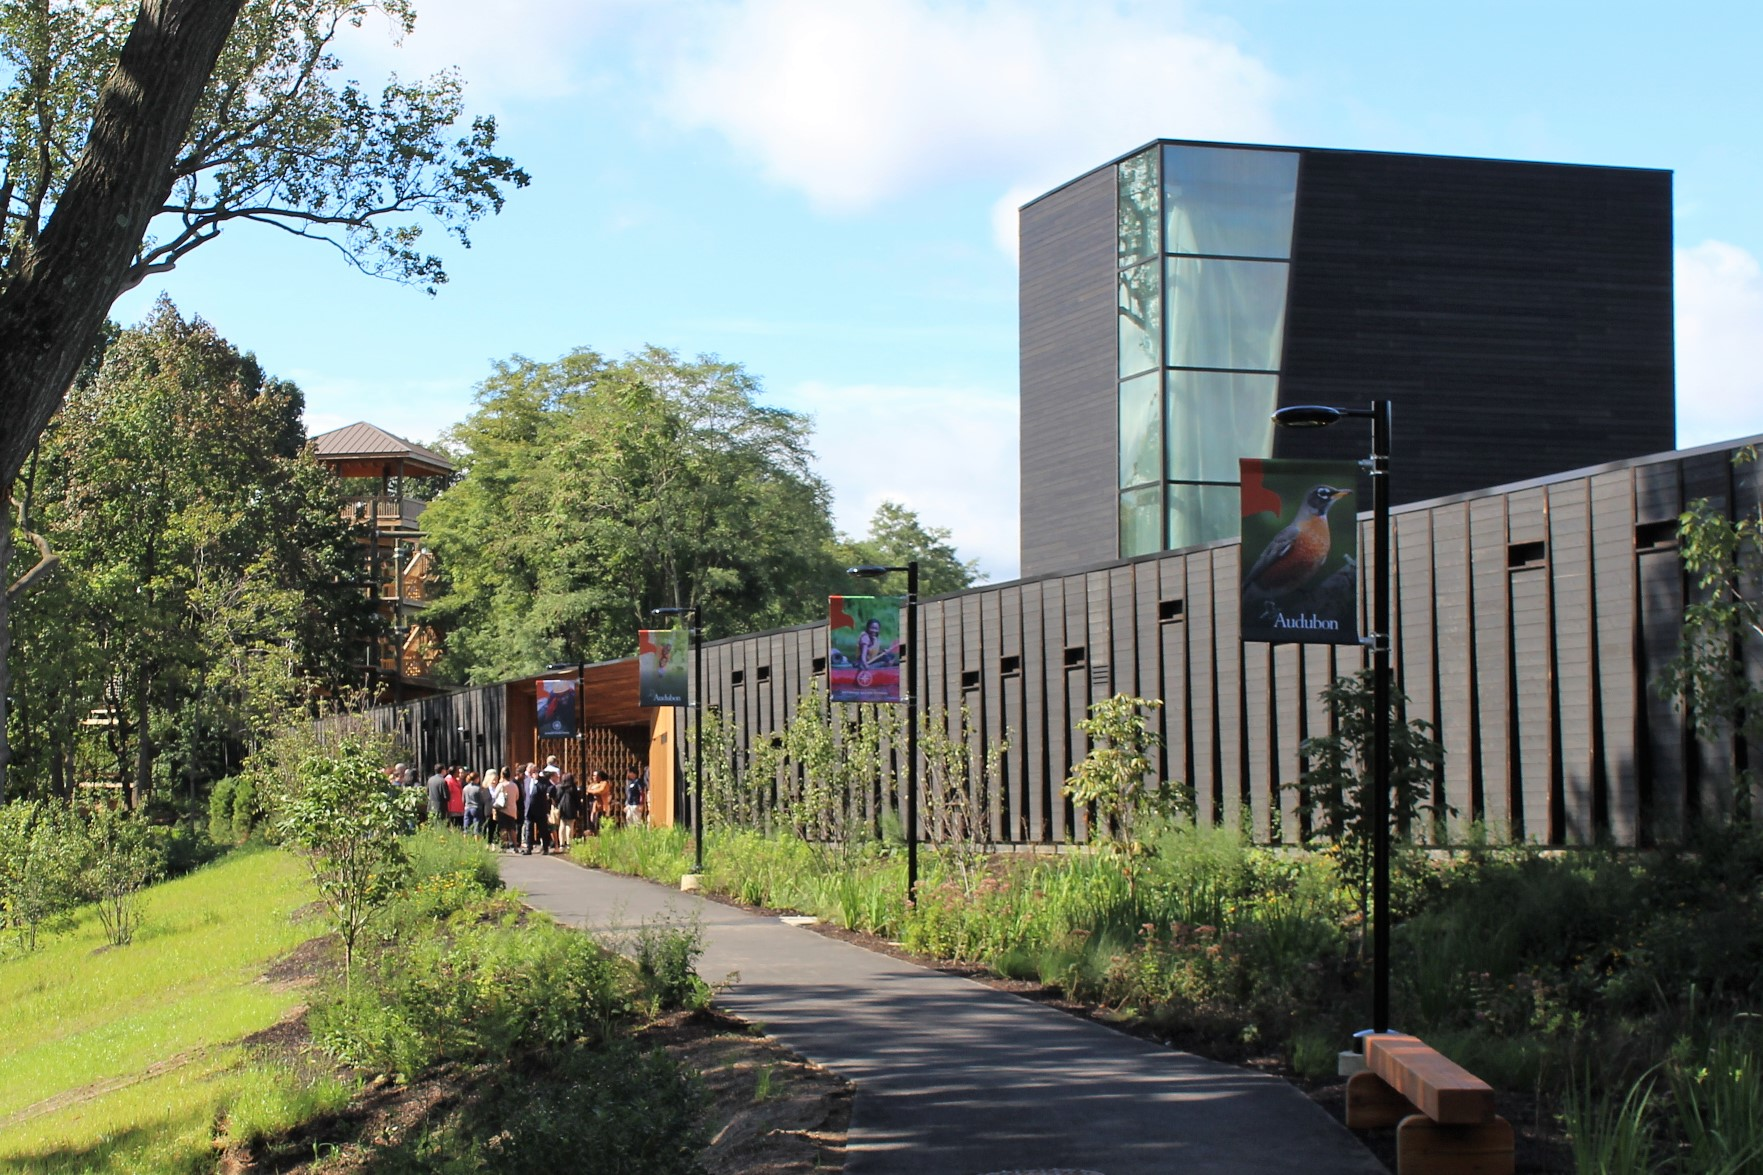 A photograph of the entrance to the new Discovery Center, shows off its modern architecture. Looking down the path lined with greenery and lampposts bearing flags featuring Audobon and Outward Bound activities and nature scenes, a crowd is gathered at the cedar-lined pass-through to the reservoir. In the background, a structure from the Outward Bound High Ropes Course can be seen through a gap in the trees.